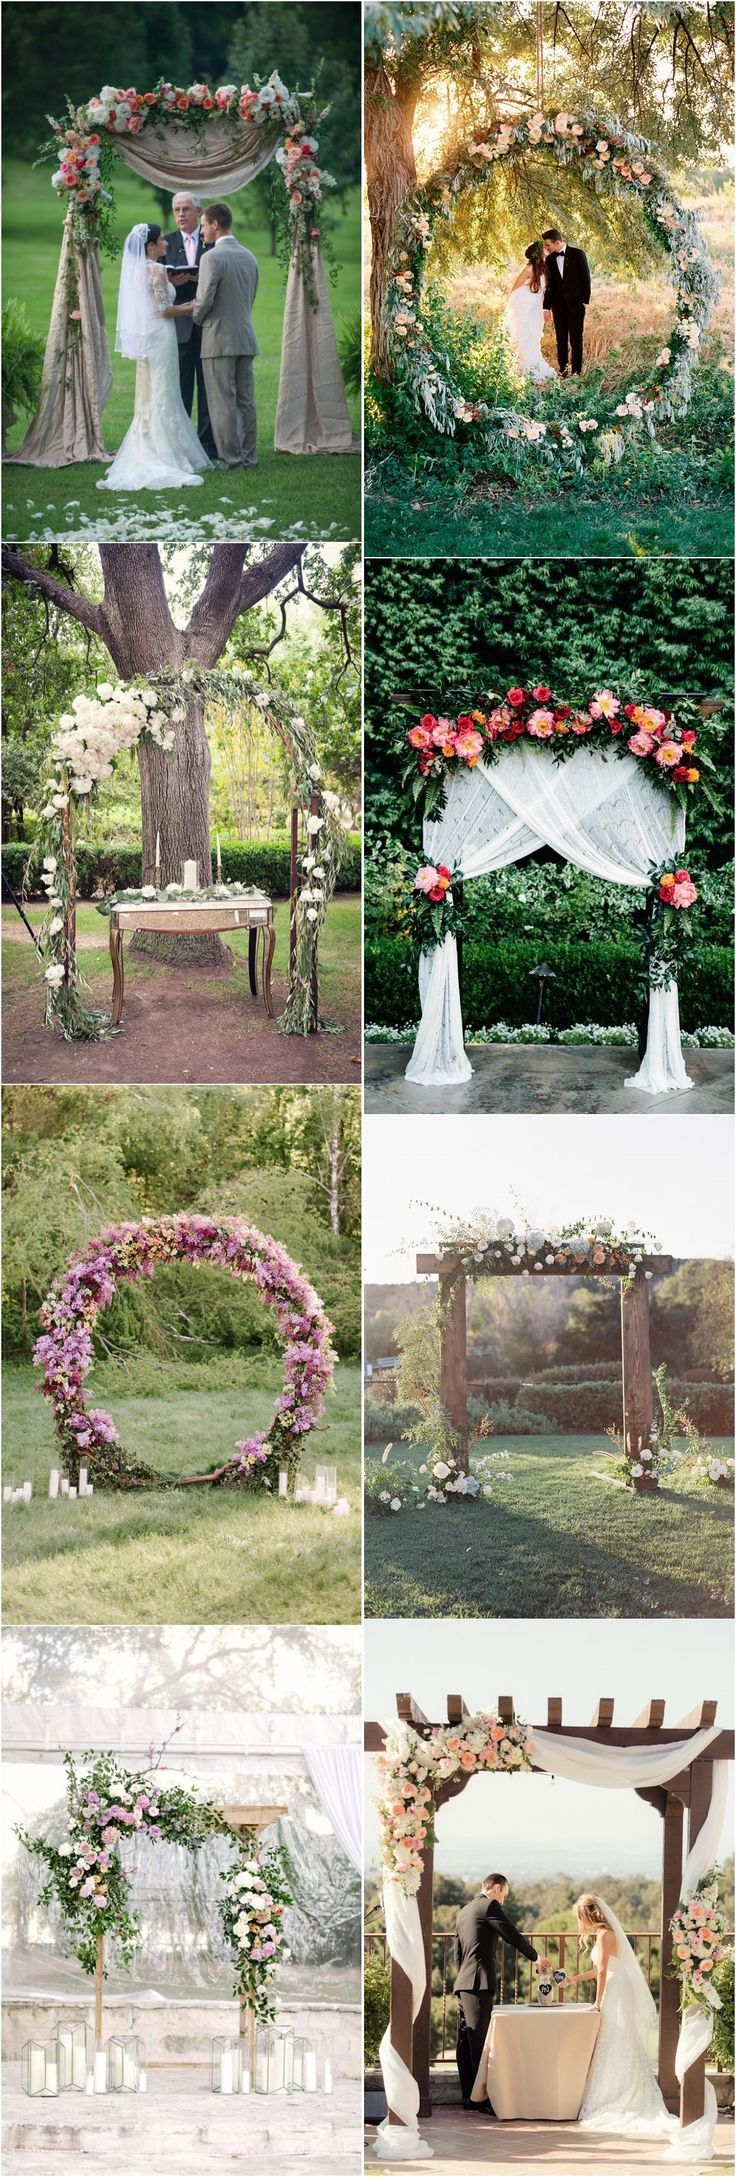 Top 20 Floral Wedding Arch Canopy Ideas #hochzeitsdeko